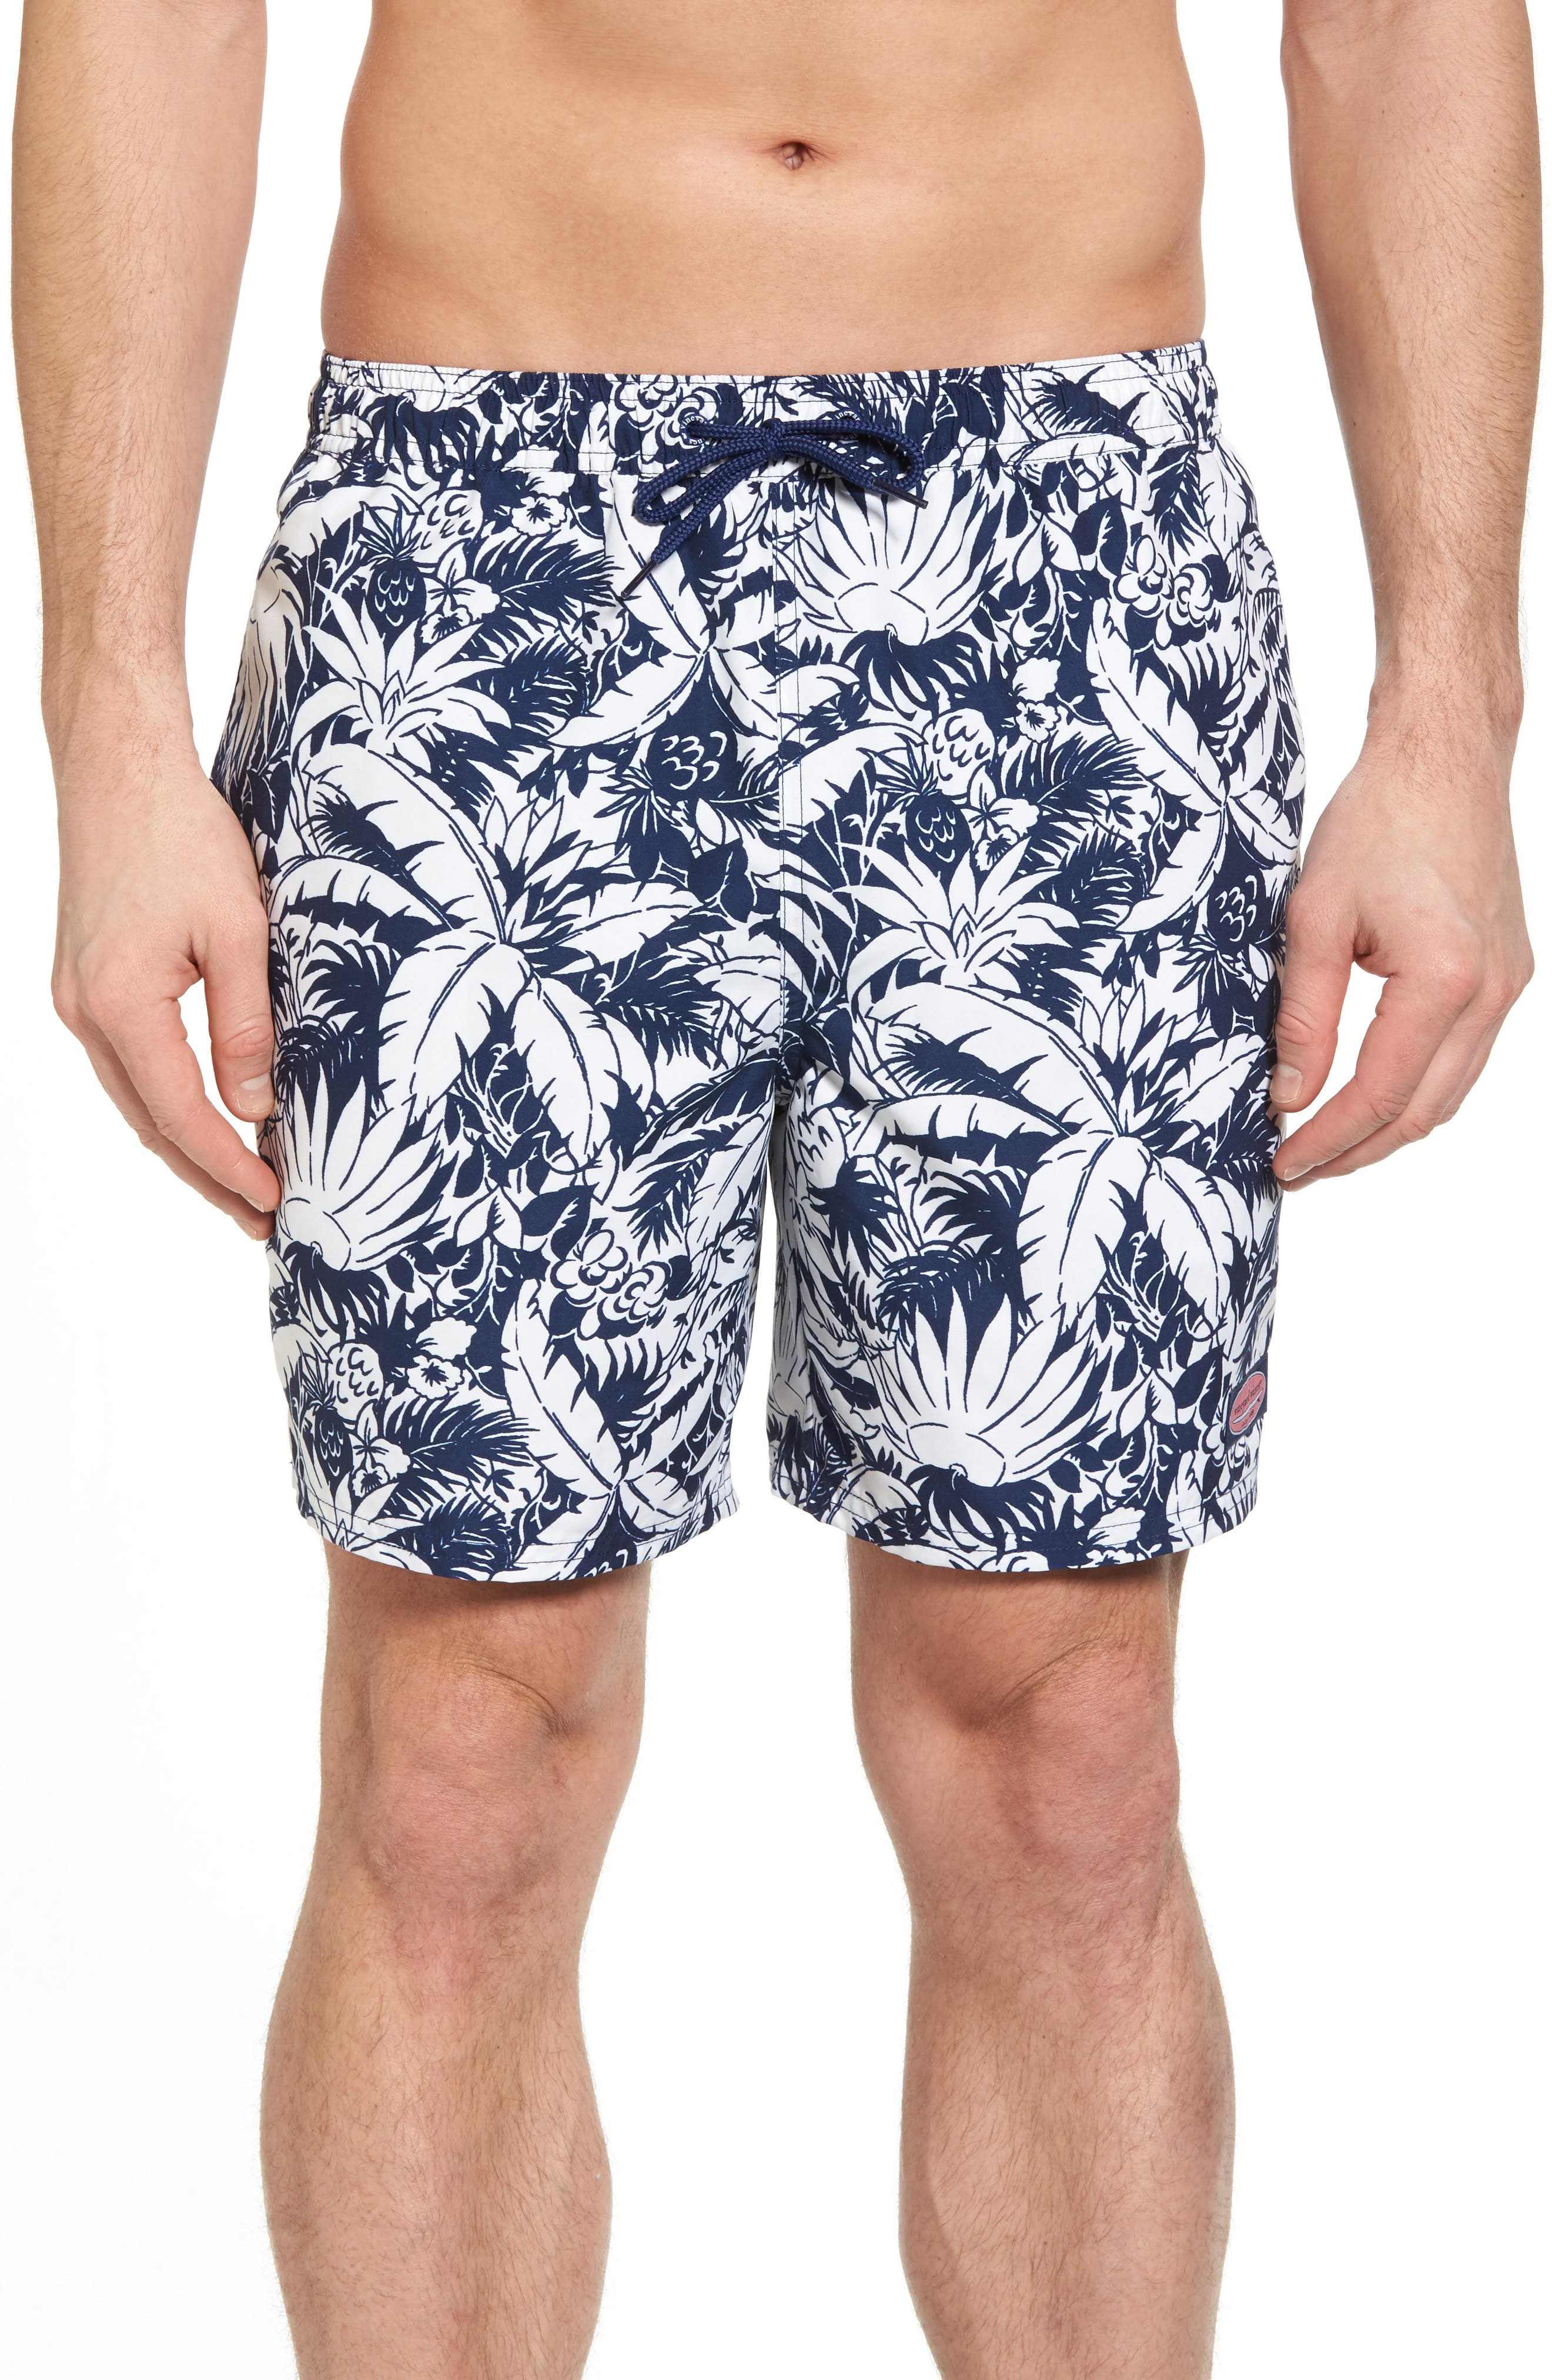 Chappy Pineapple in Palms Swim Trunks,                             Main thumbnail 1, color,                             400